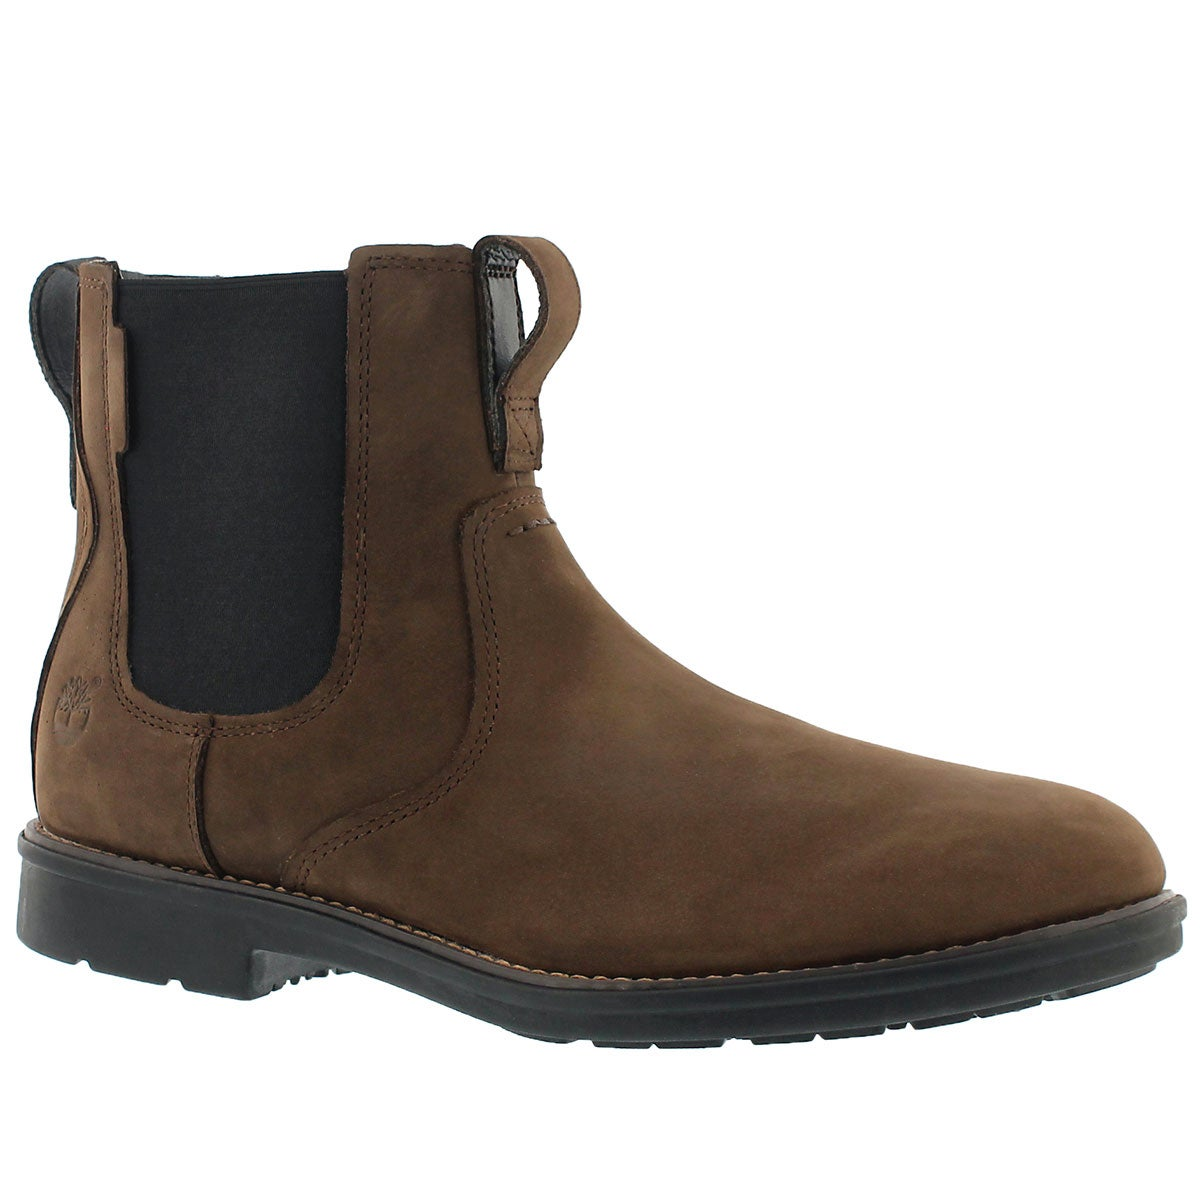 Men's CARTER NOTCH brown chelsea boots - Wide